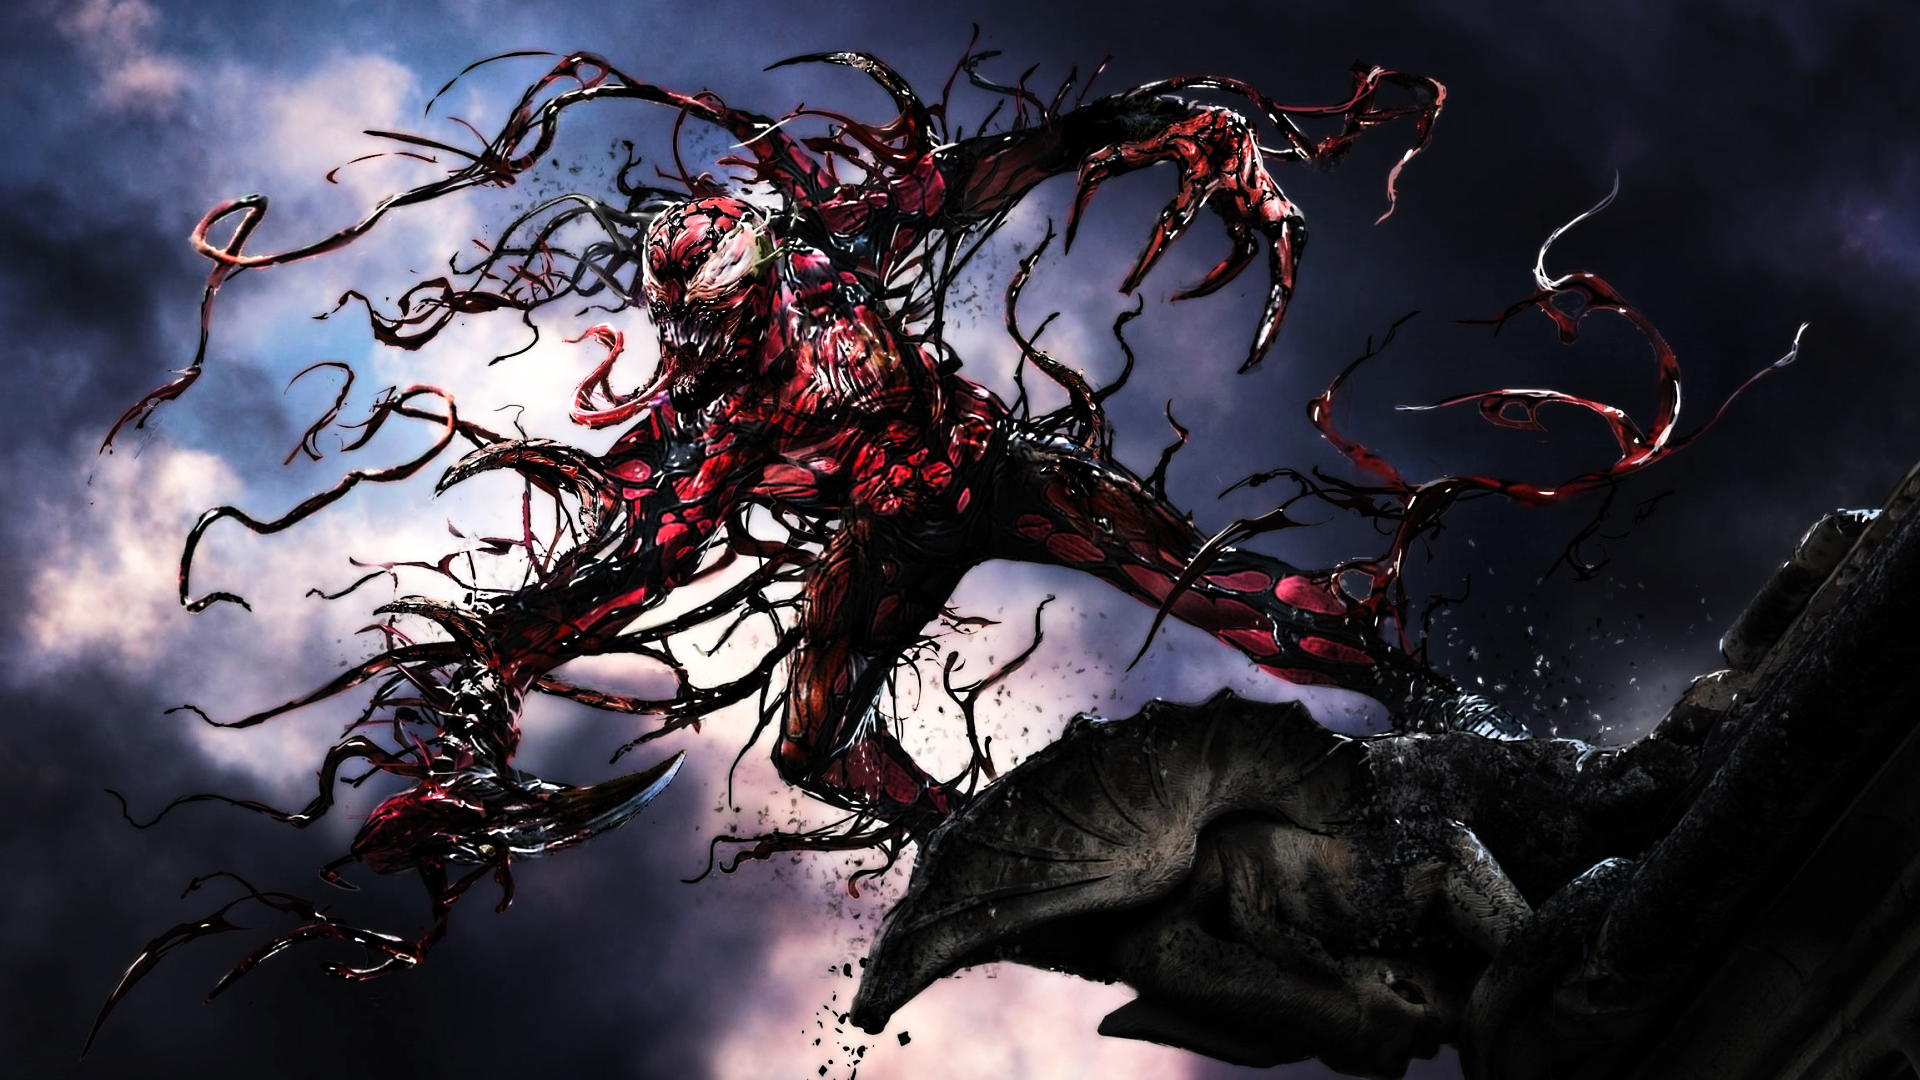 Carnage is weird.png